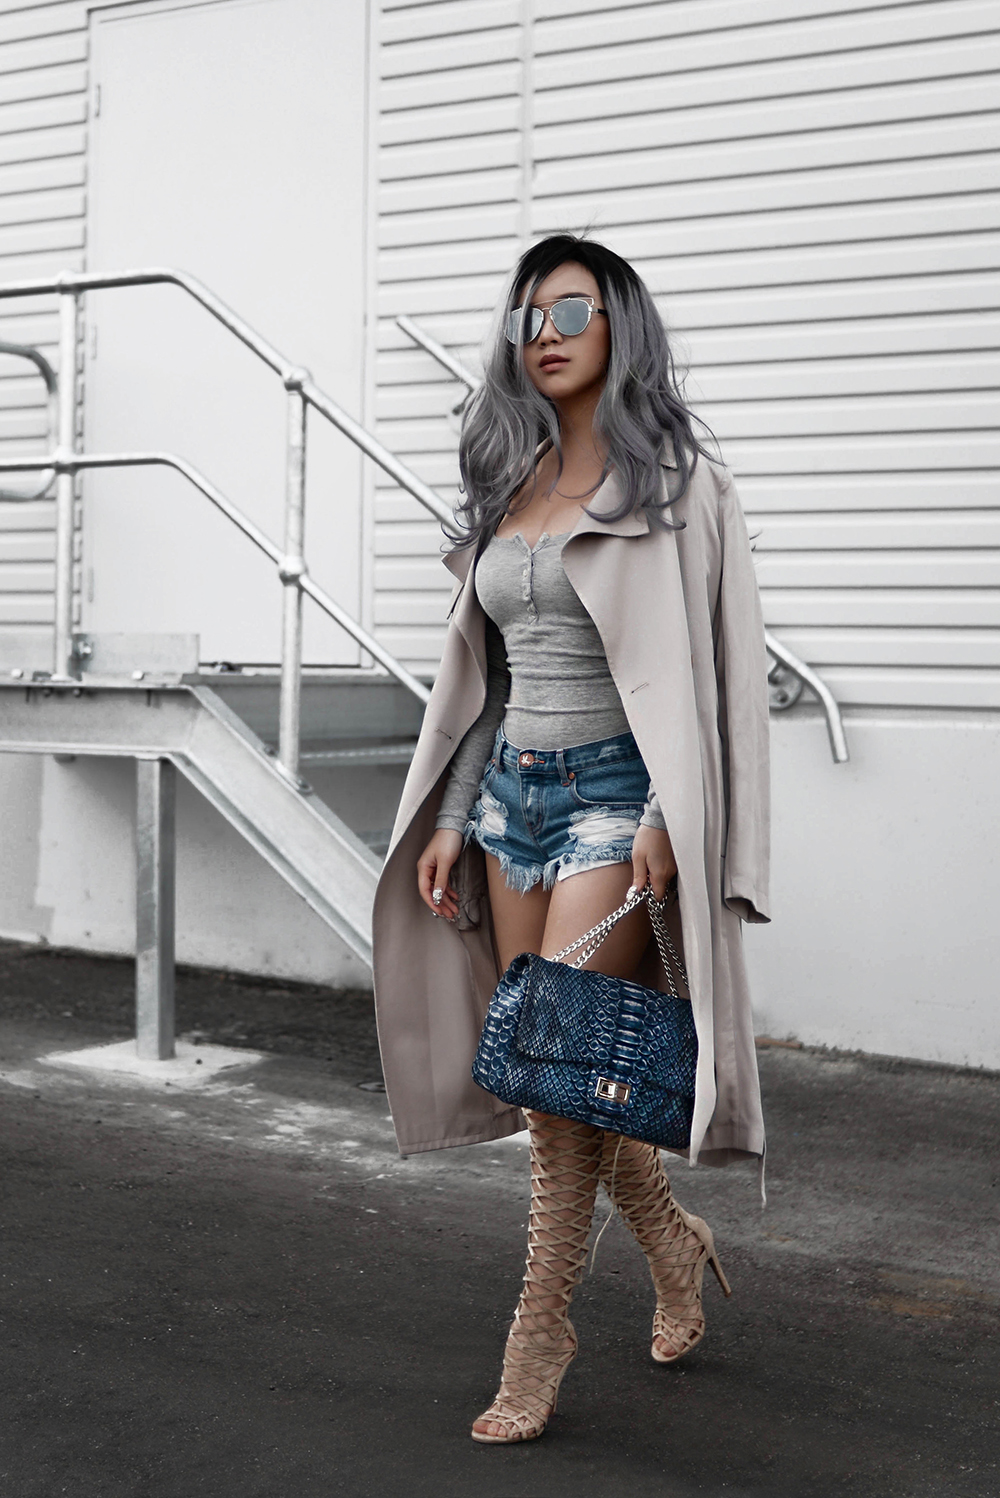 willabelle-ong-paledivision-street-style-fashion-travel-lifestyle-blog-singapore-australia-grey-outfit-editorial-gray-hair-denim-shorts-python-bag-denim-trench